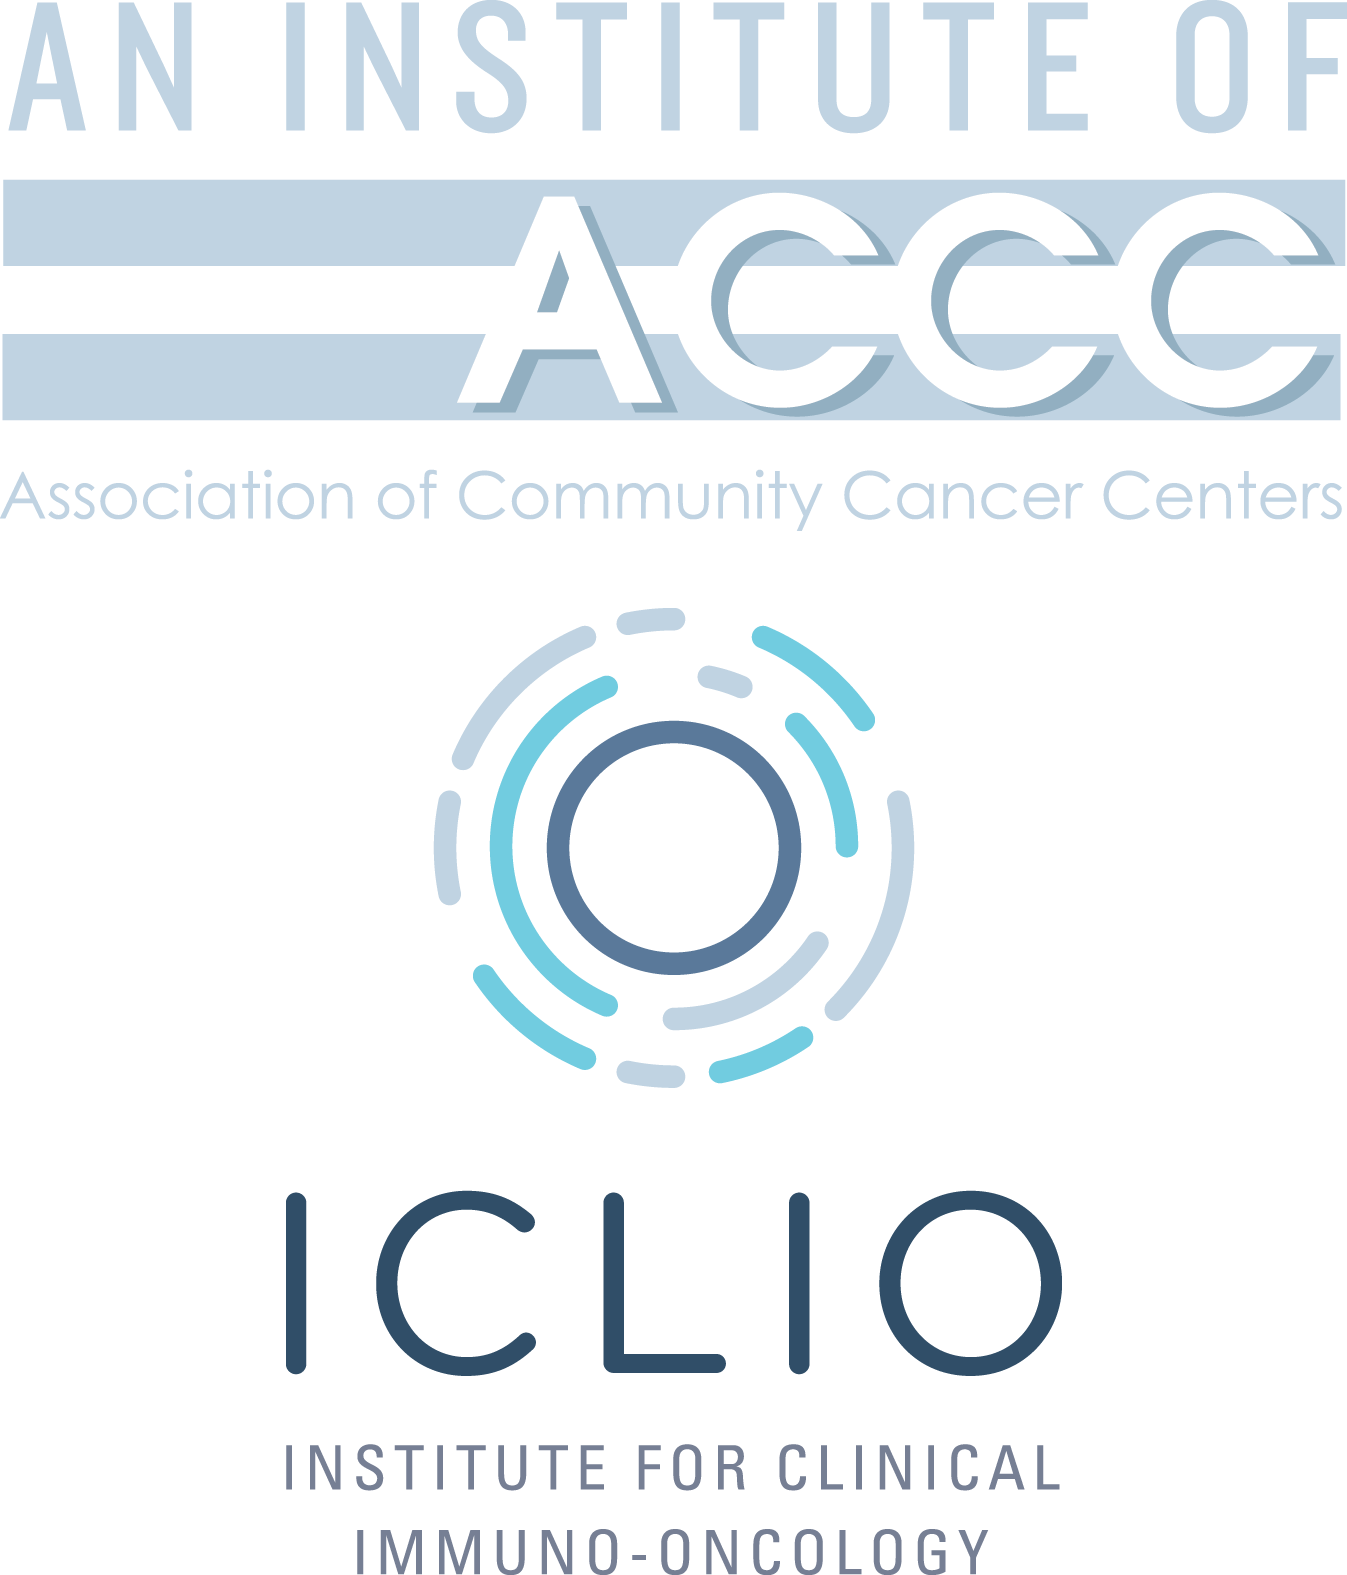 Institute for Clinical Immuno-Oncology